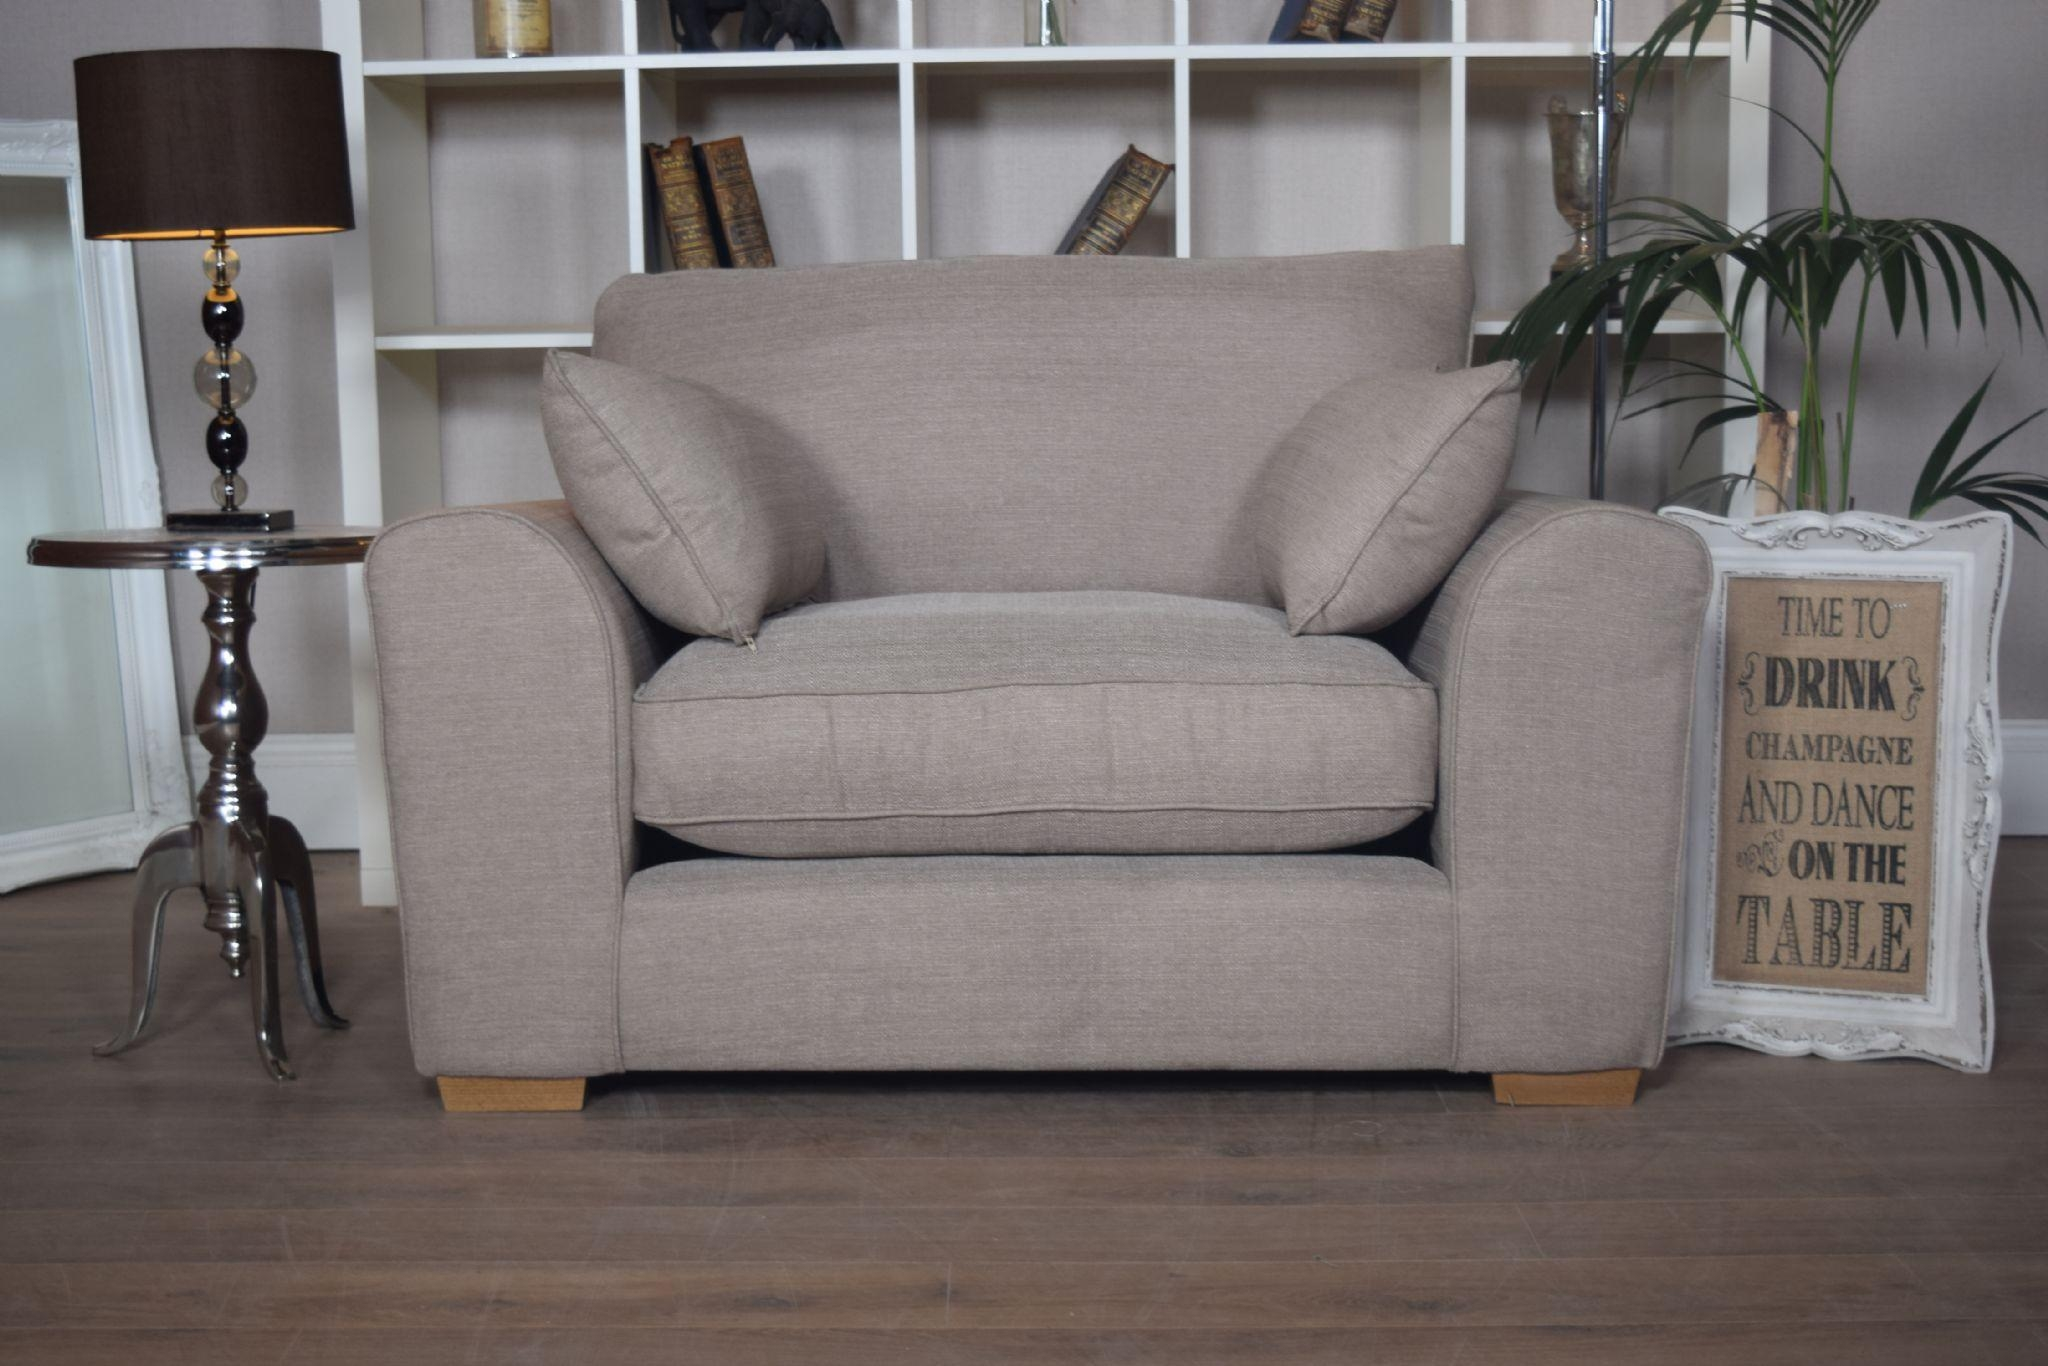 Set New Ashdown 3 Seater Sofa & Cuddle Chair Set – Beige Mink Regarding 3 Seater Sofa And Cuddle Chairs (Image 10 of 20)